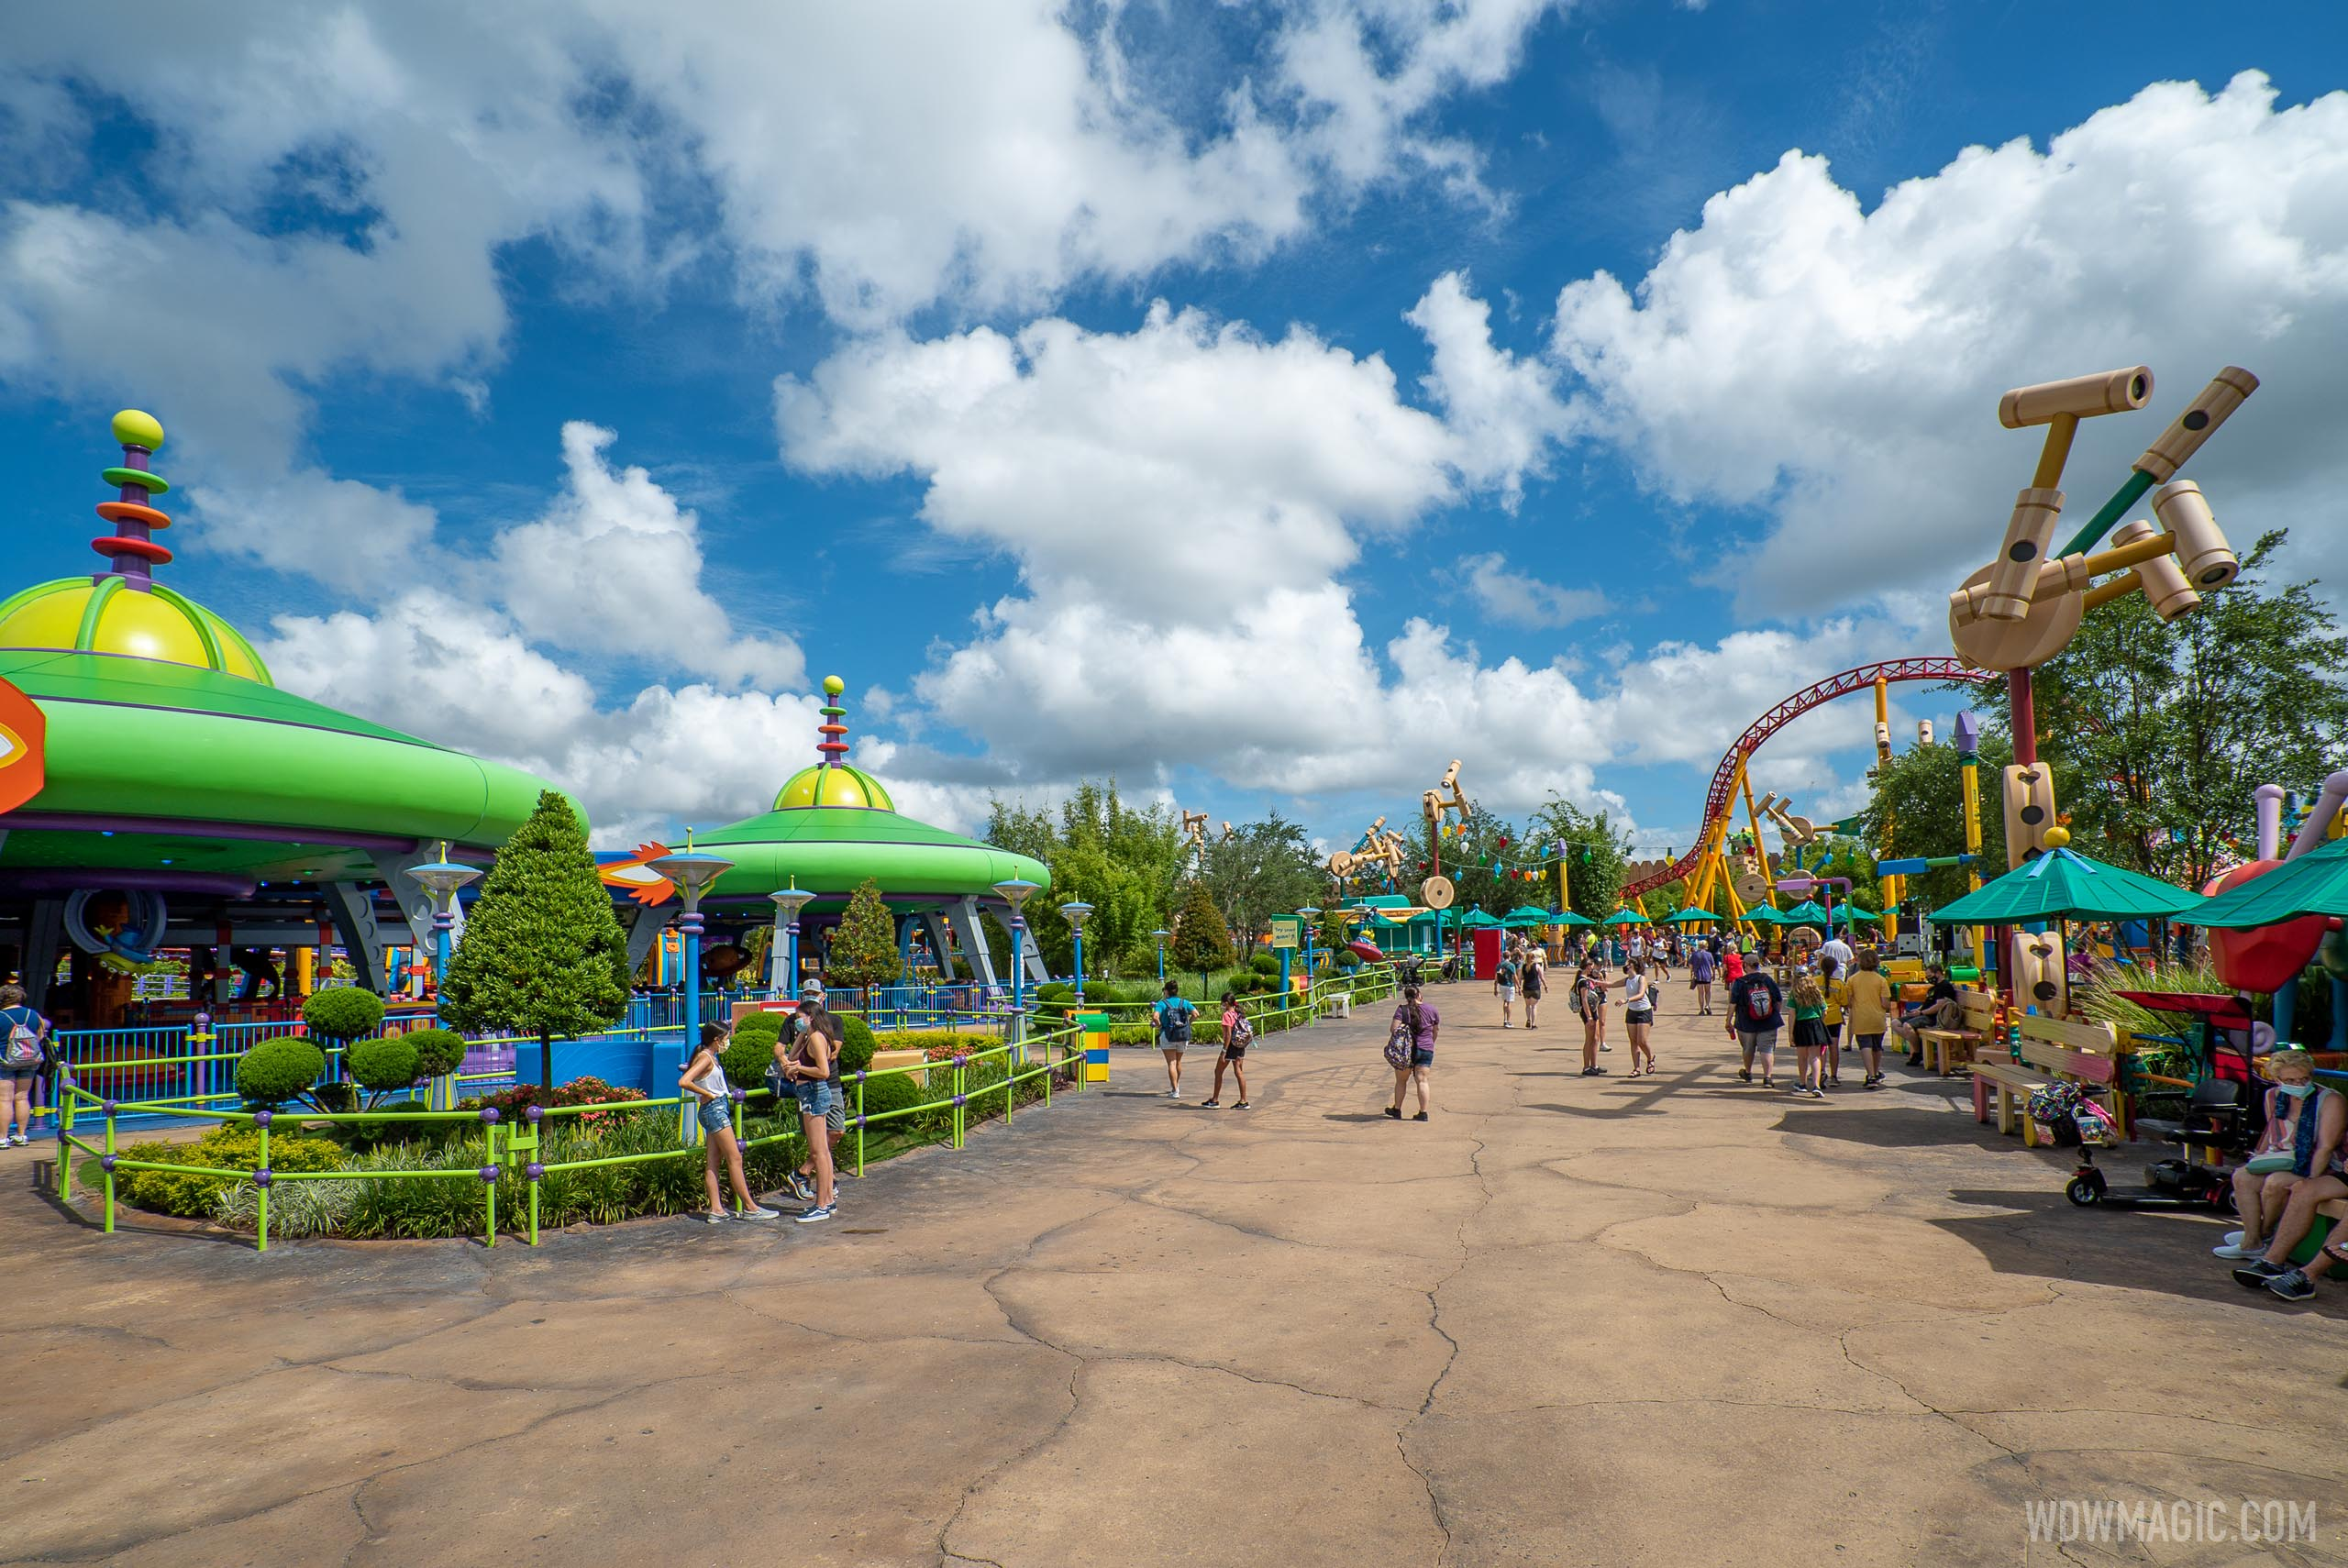 Toy Story Land still feels the most busy with physical distancing